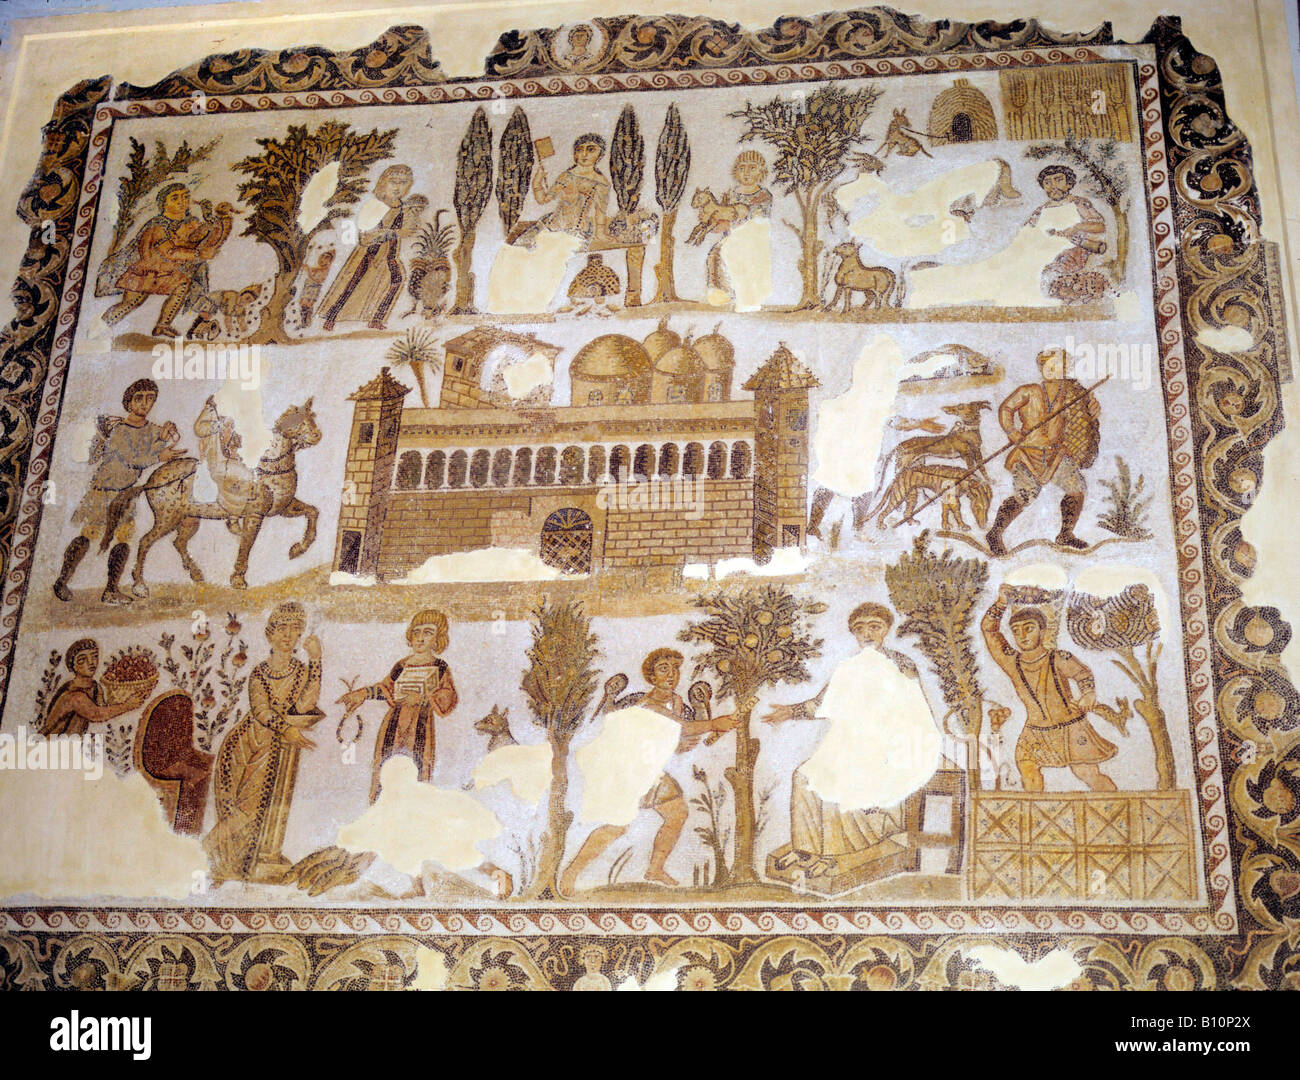 Activities on the estate of Seigneur Julius ; hunting, olive harvesting etc. Roman period mosaic. Daily life in - Stock Image